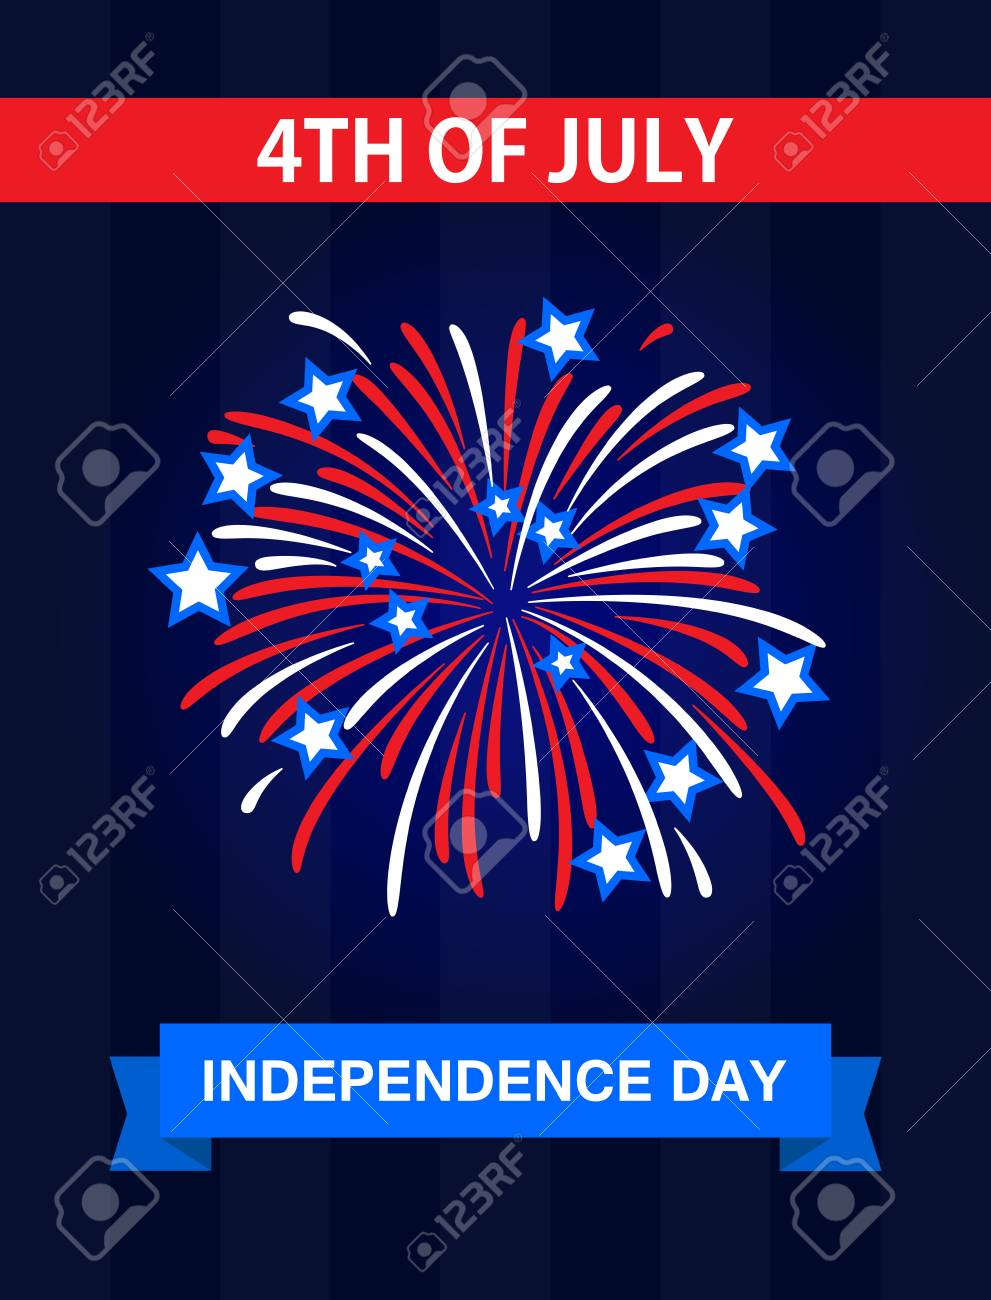 Happy Independence Day The 4th July United States Of America